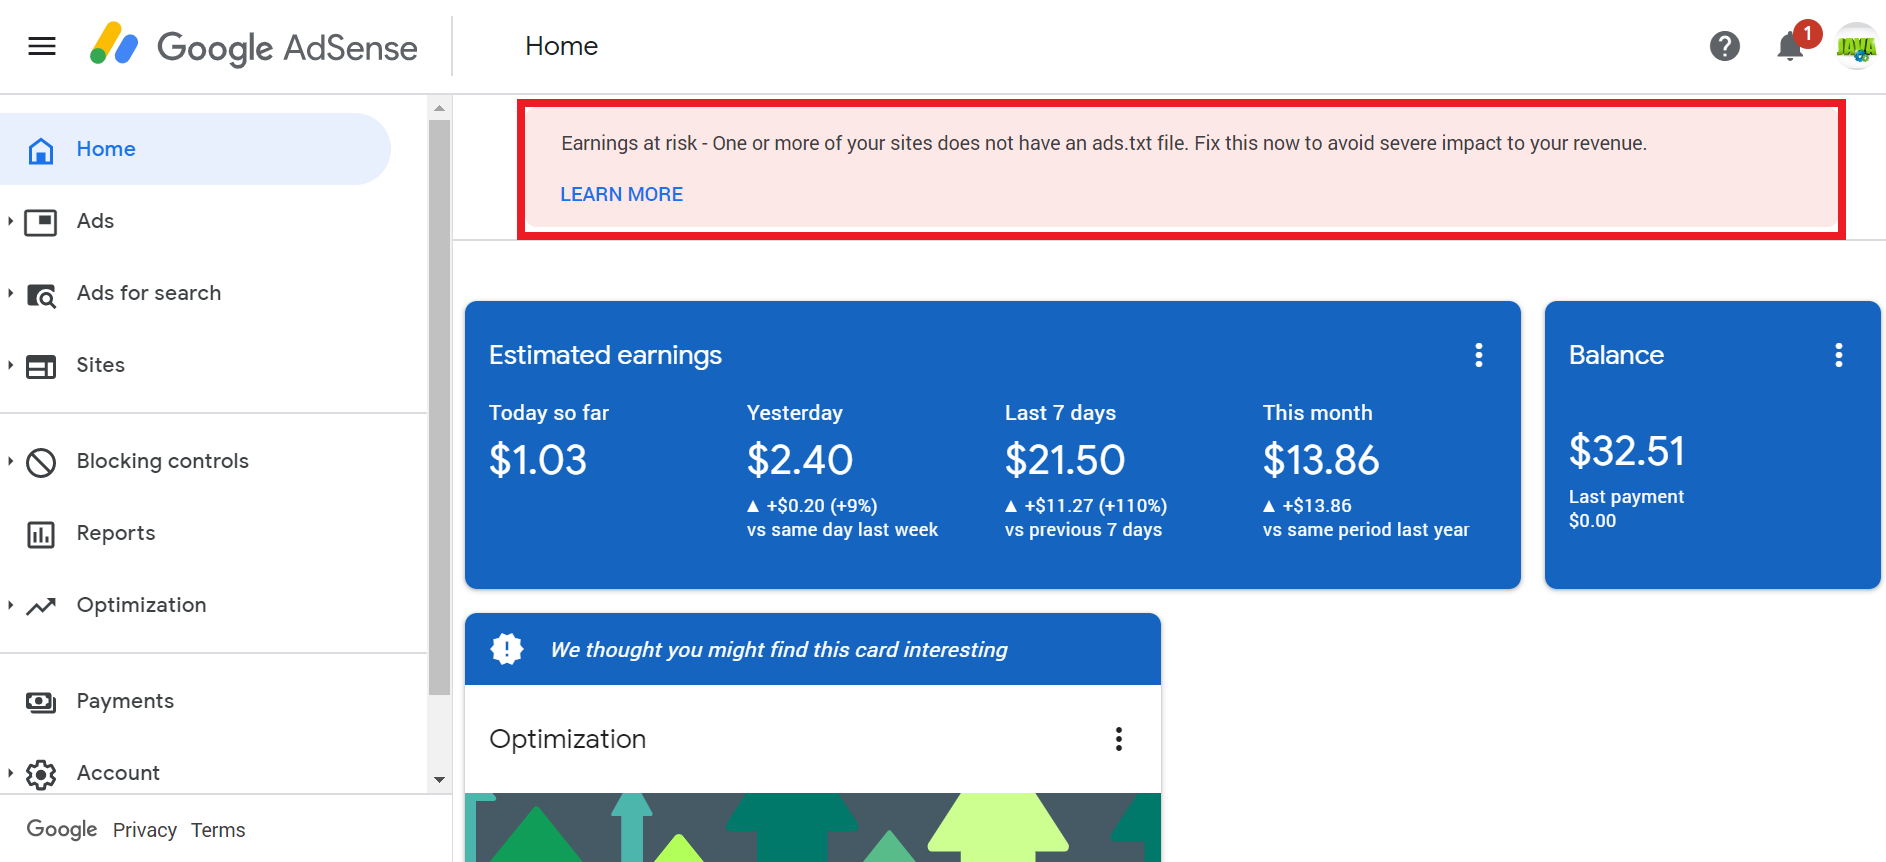 fix earning at risk warning in adsense